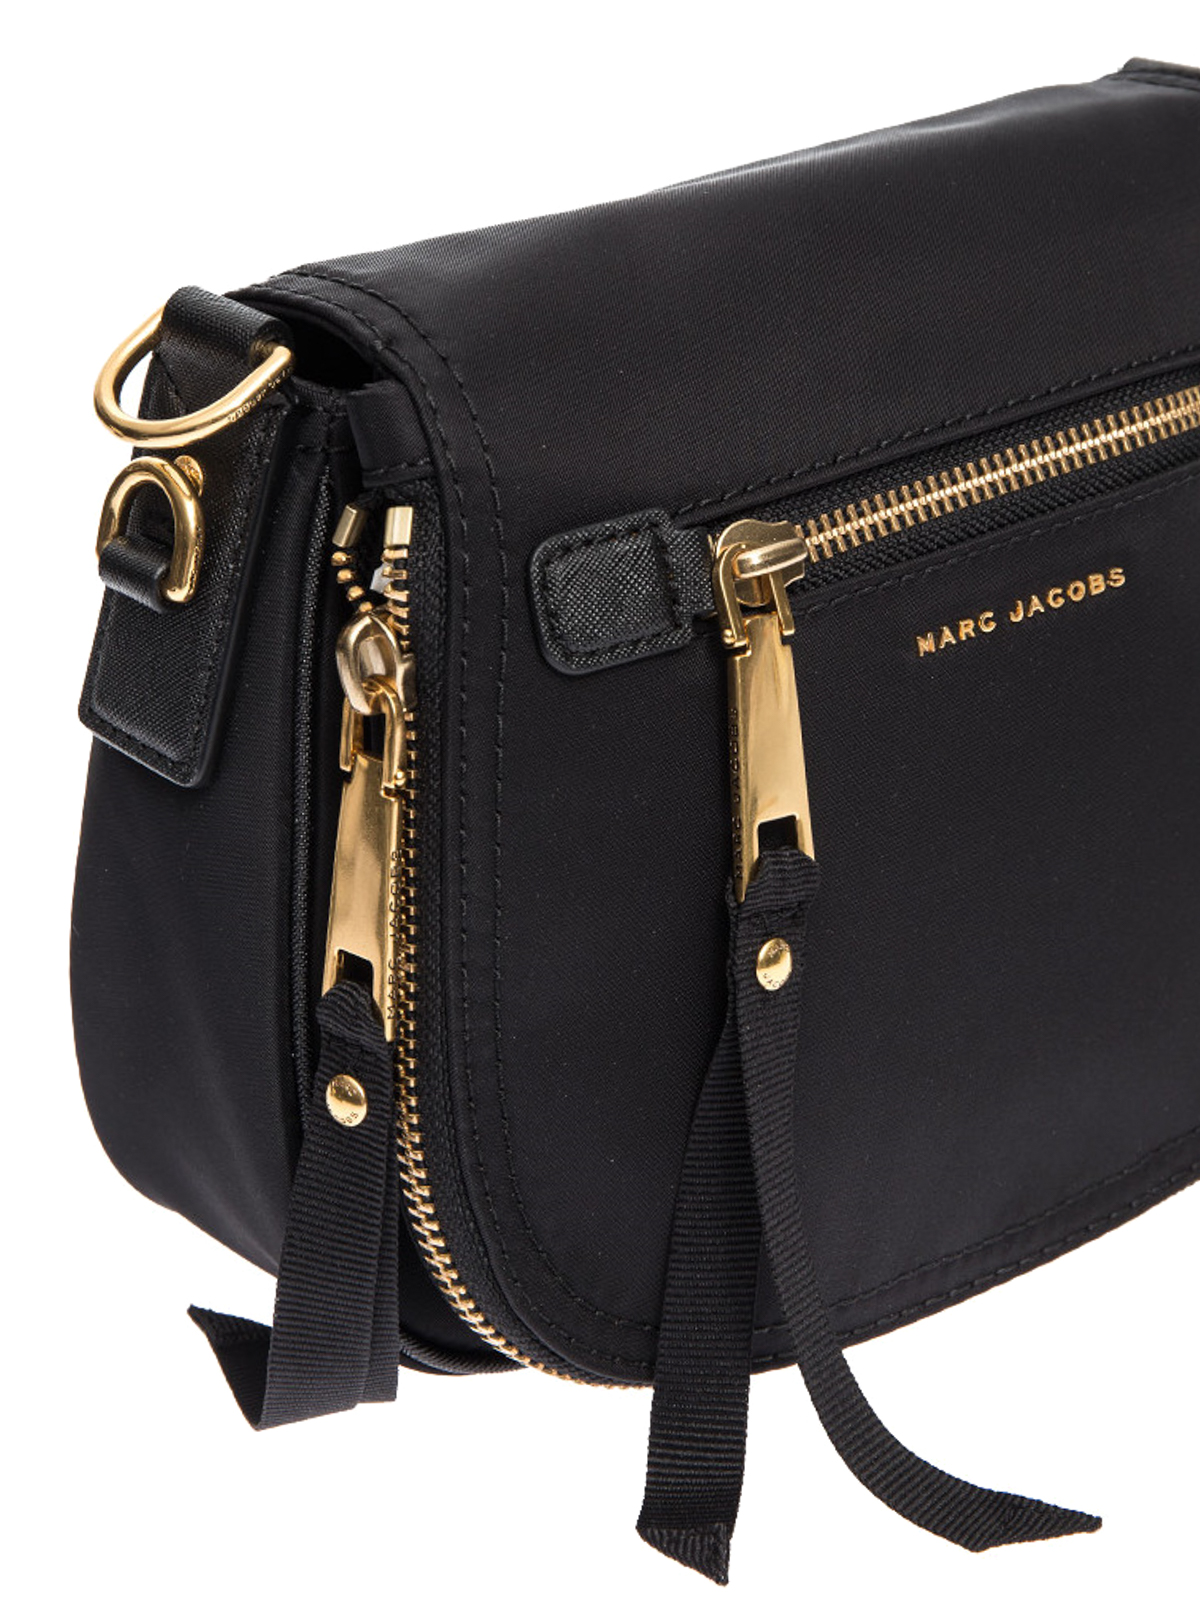 59d67bccfad5 Marc Jacobs - Trooper Nomad small saddle bag - shoulder bags ...